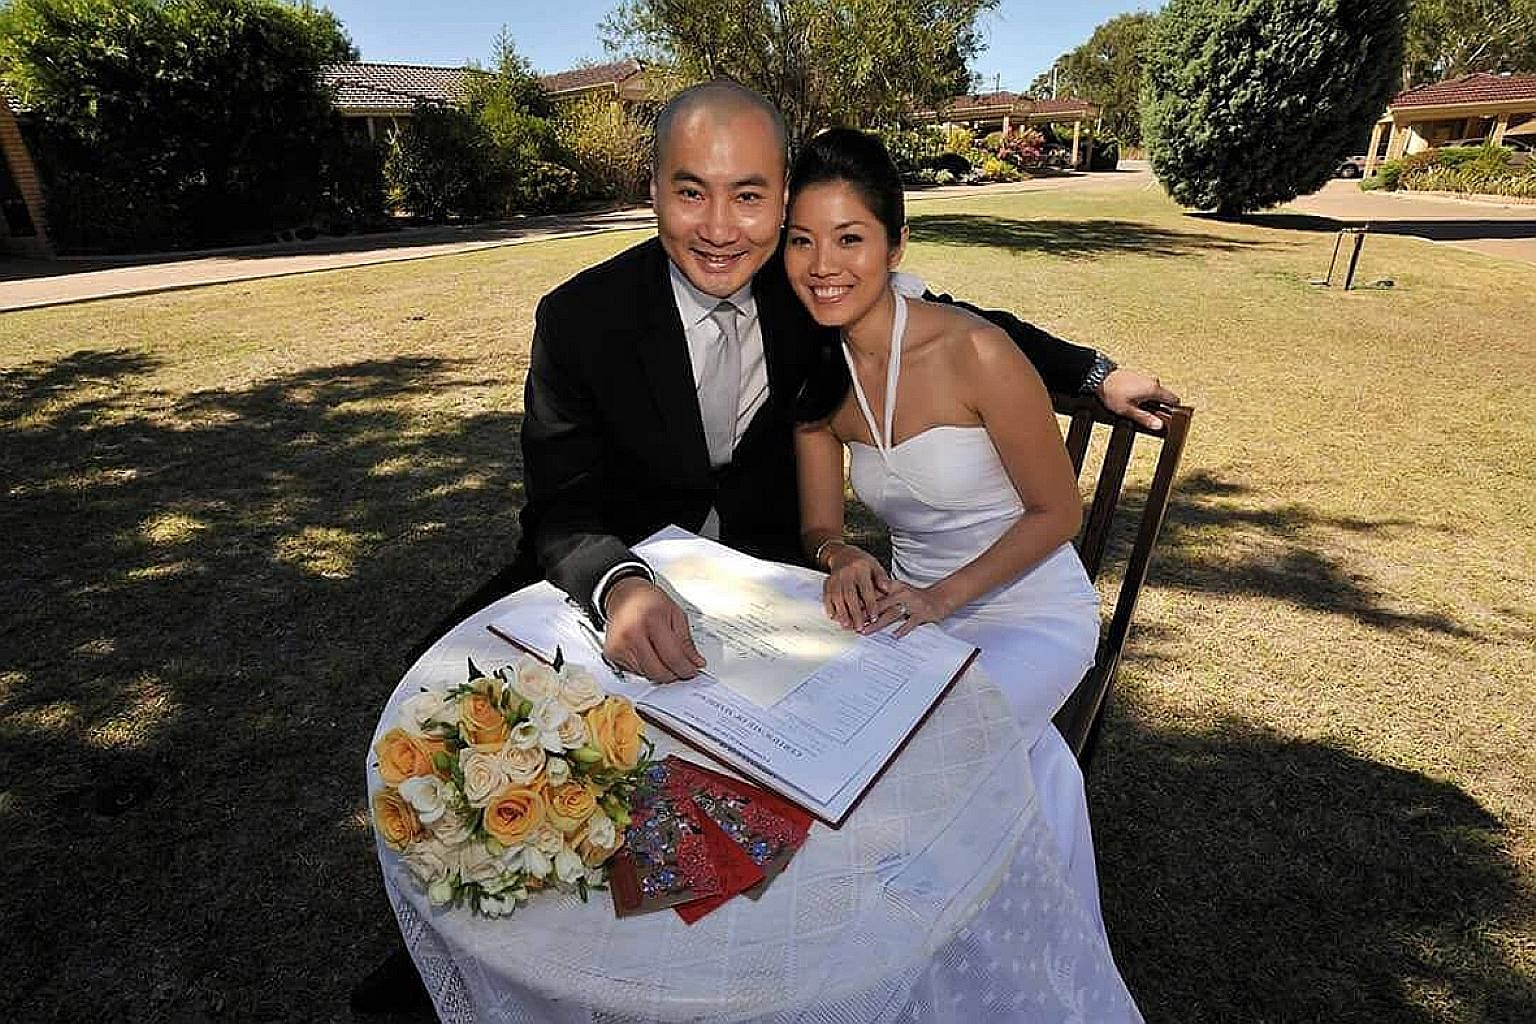 (Clockwise from left) Mr Ricky Ng and his wife Chloe Chan after winning Asian Restaurant of the Year at this year's World Gourmet Summit Awards of Excellence; Mr Ng at Rottnest Island, Western Australia, in the 1990s; and at the couple's wedding in P